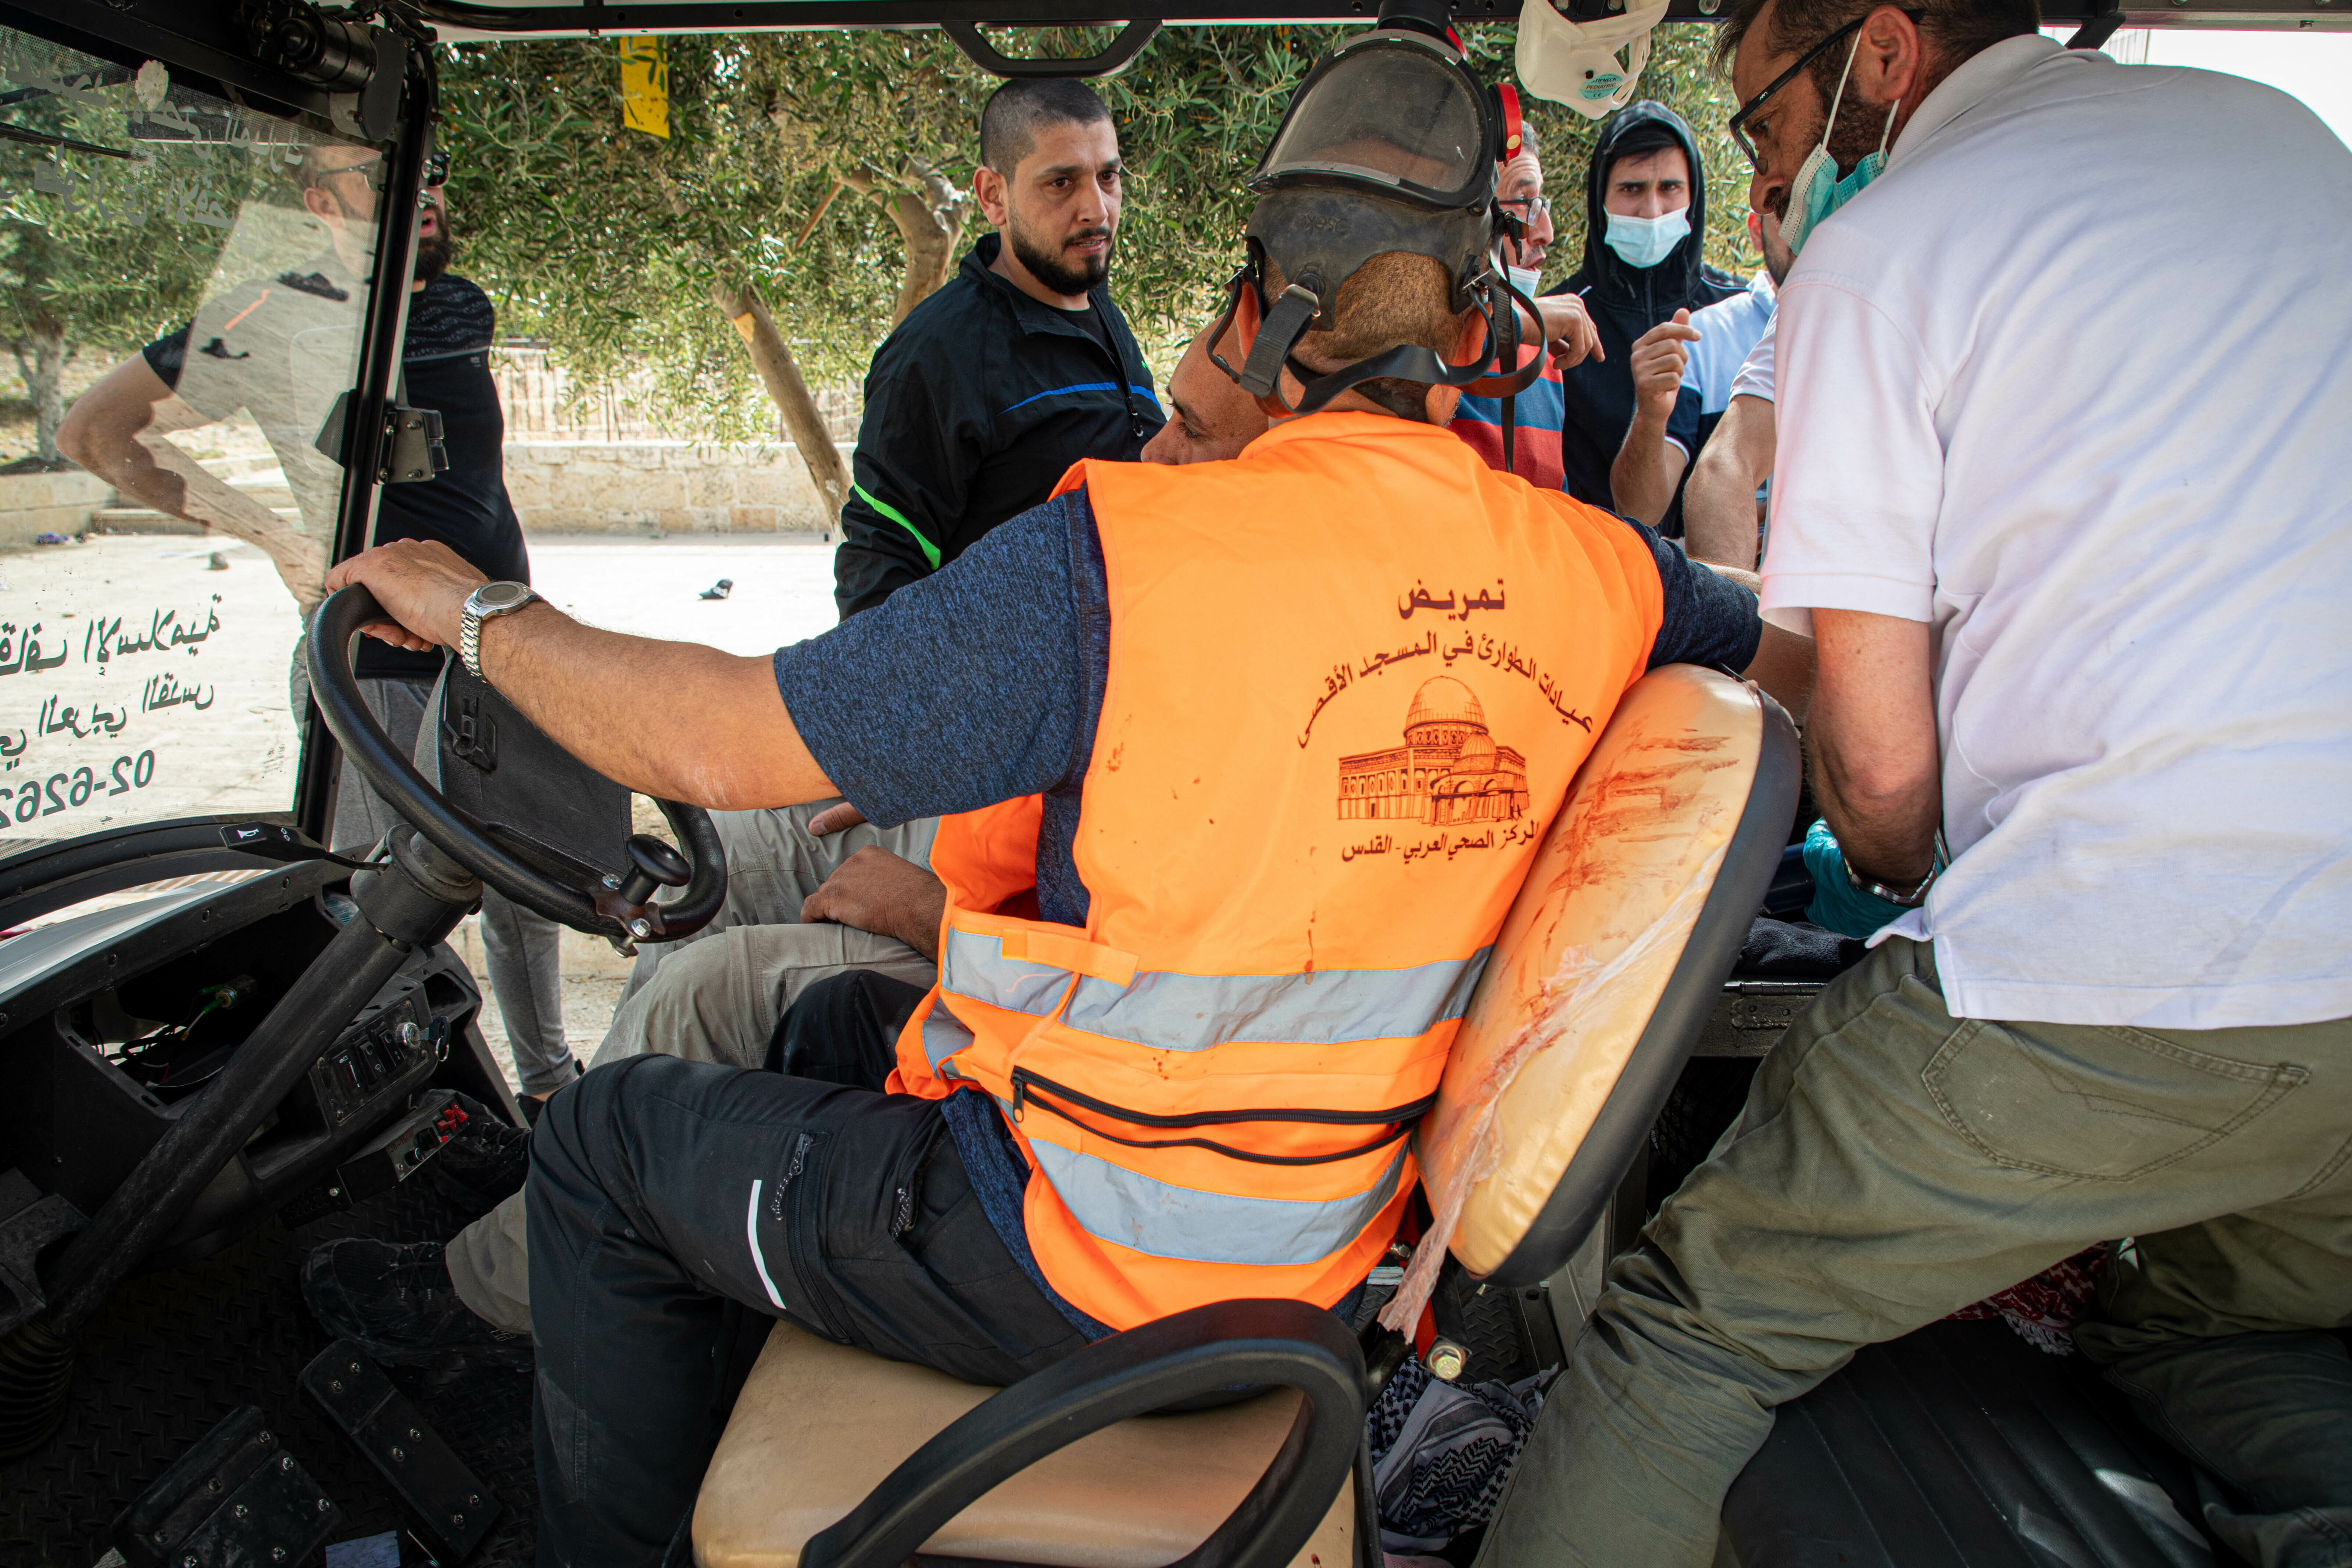 Israeli police fire tear gas, rubber bullets at Palestinians guarding Al-Aqsa Mosque against extremist Jews